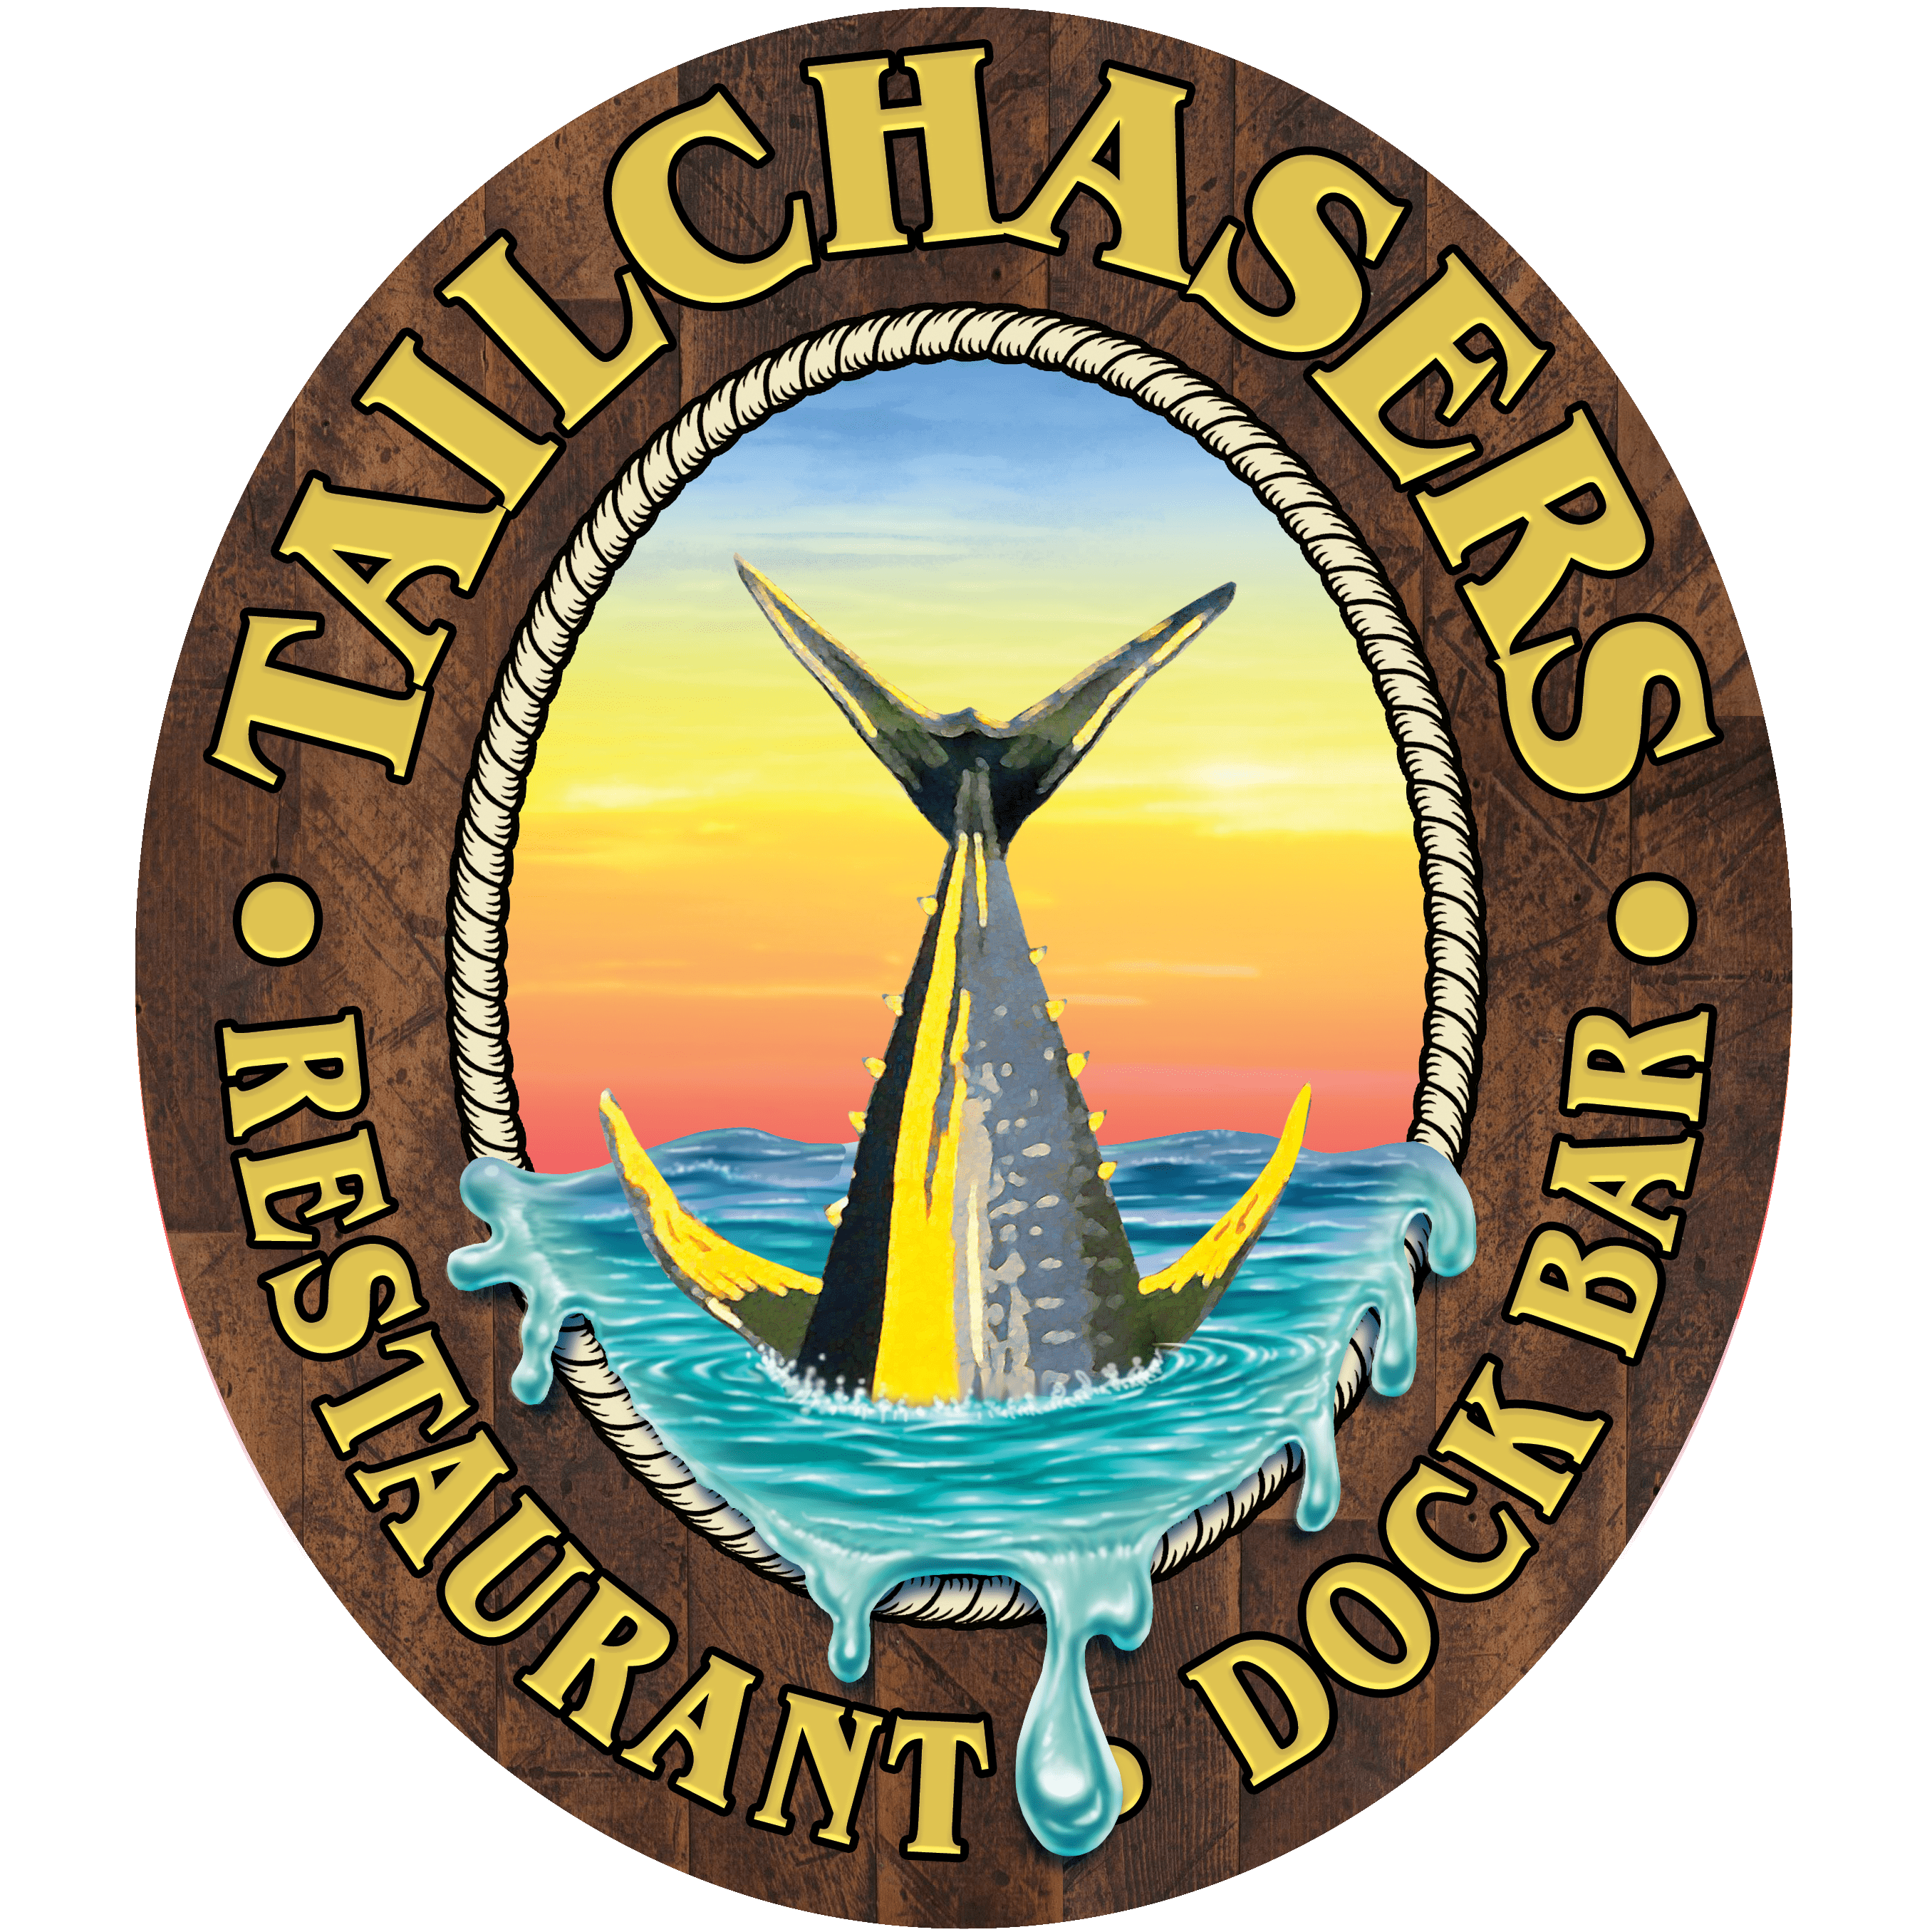 Tailchasers Restaurant & Dock Bar image 7